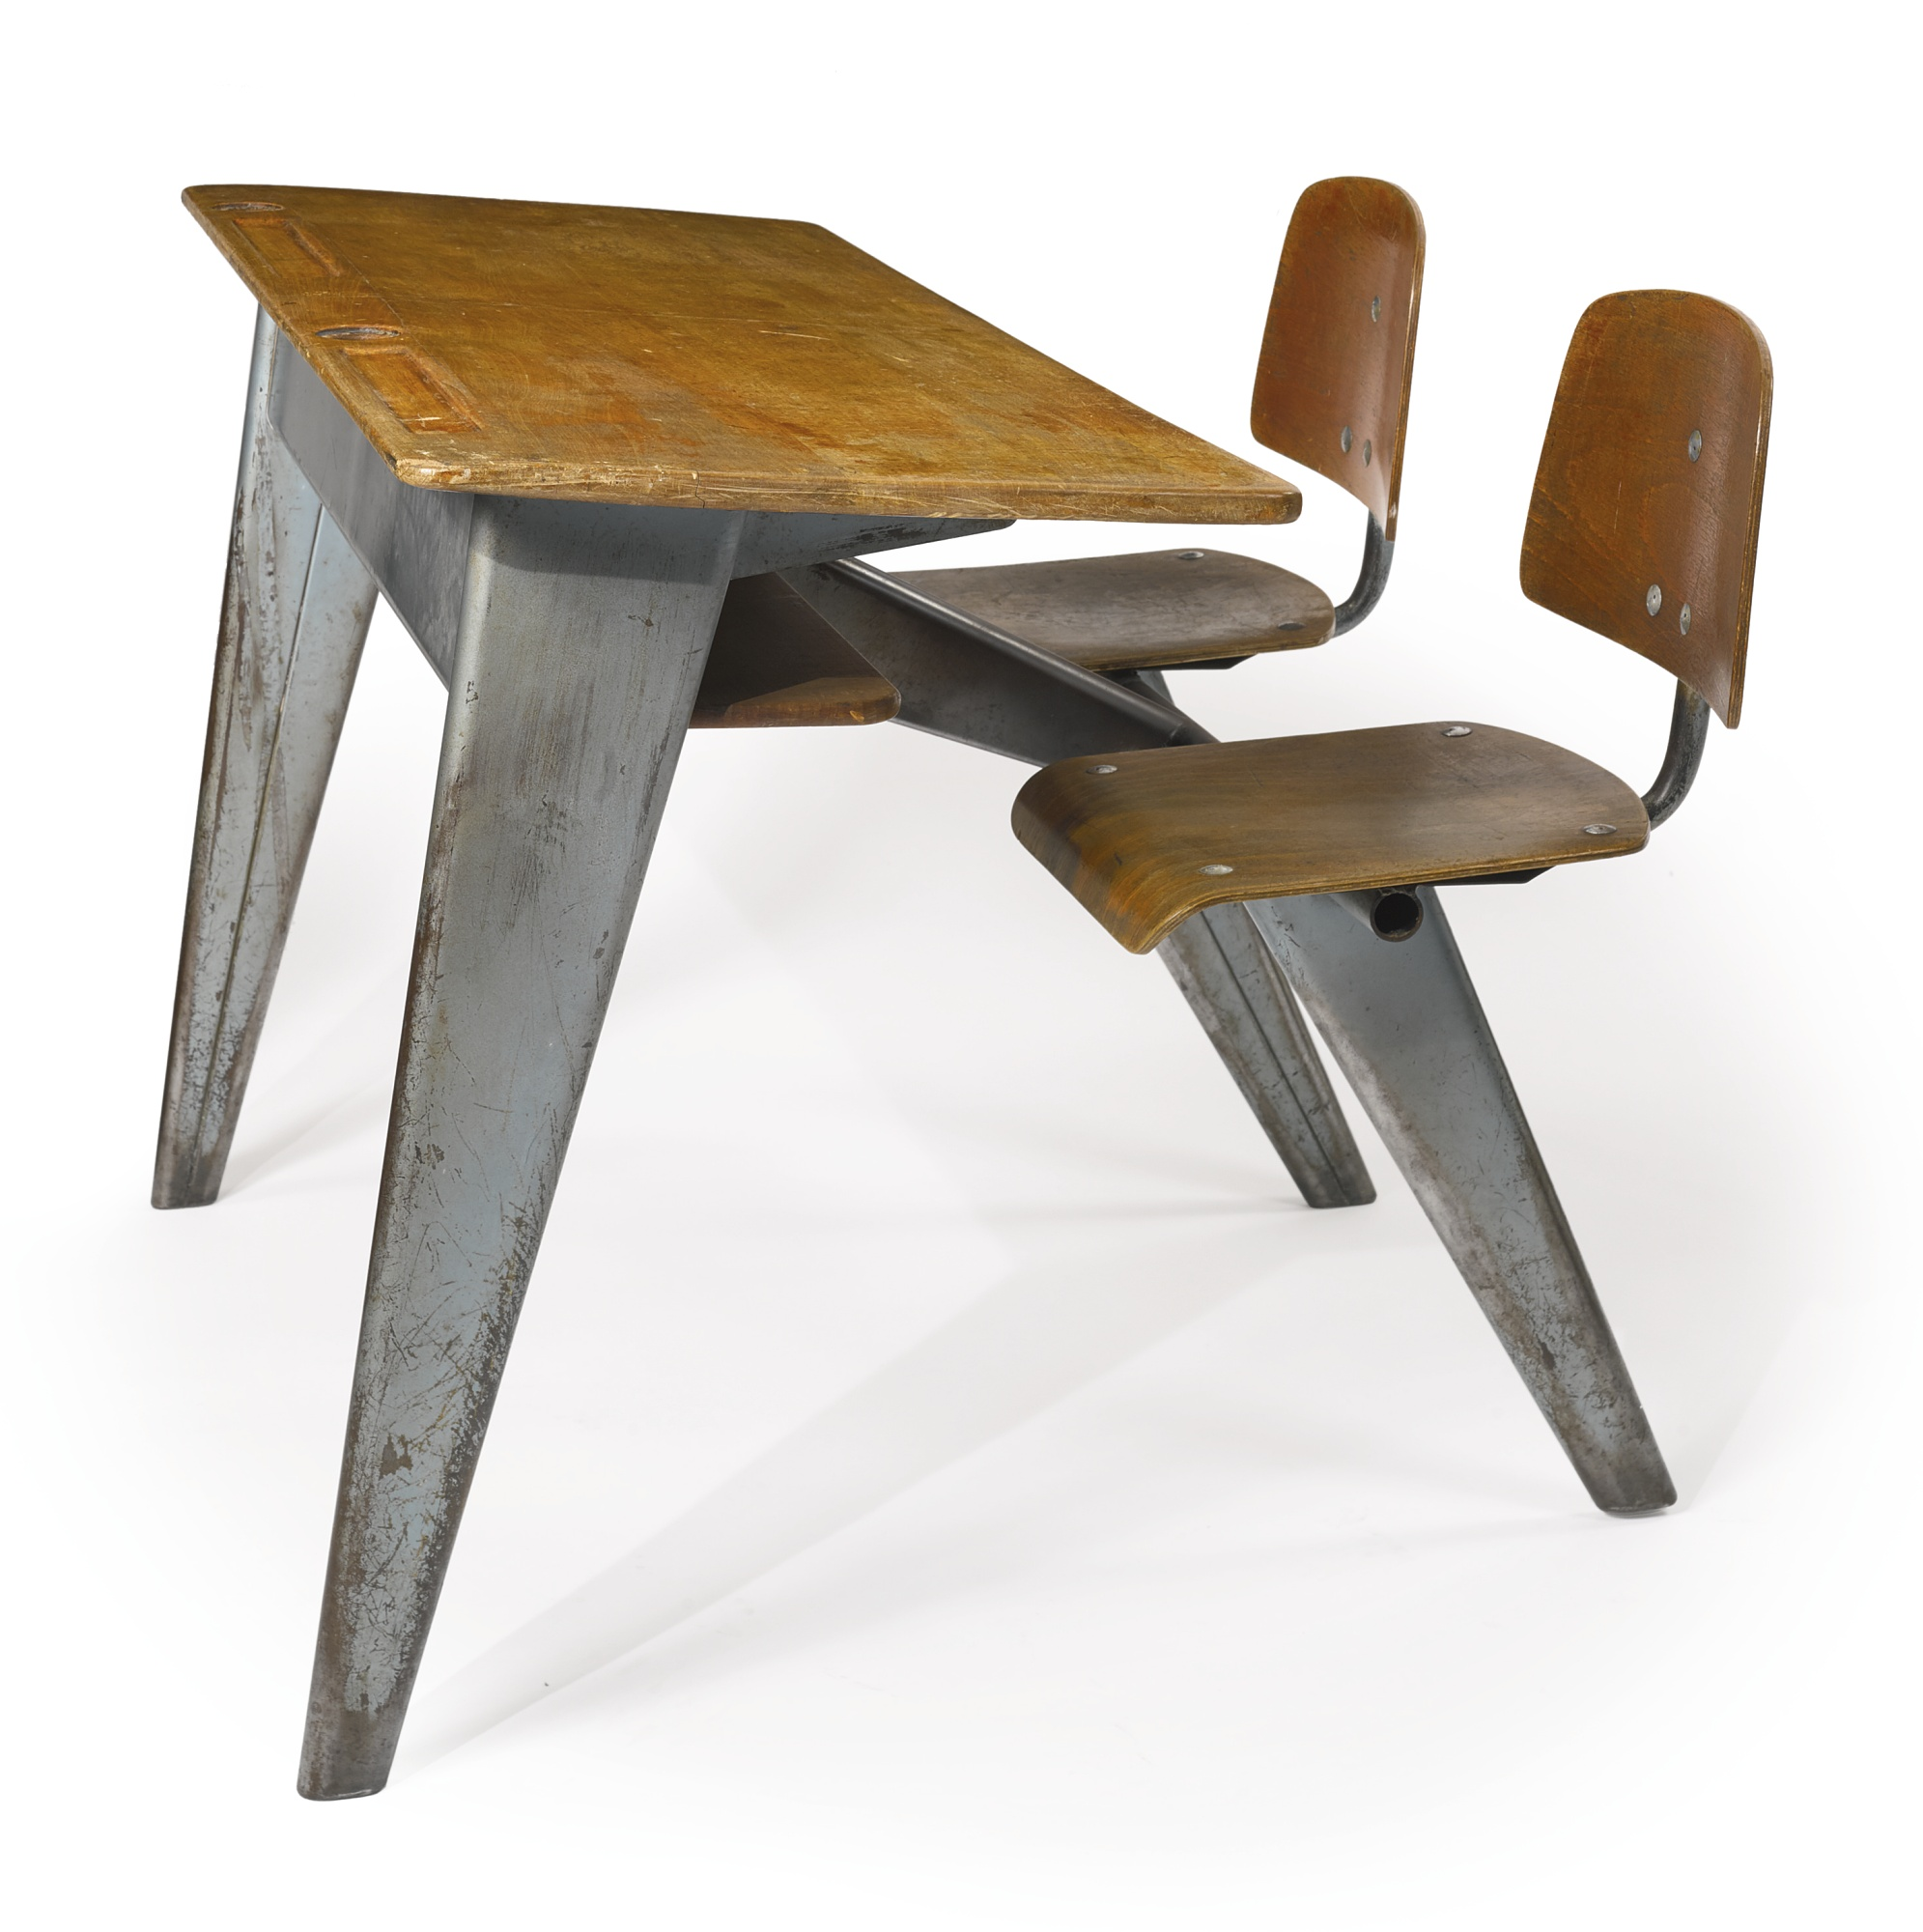 Jean Prouve - Two-Seater School Desk Model Pg 11 Variation-1951